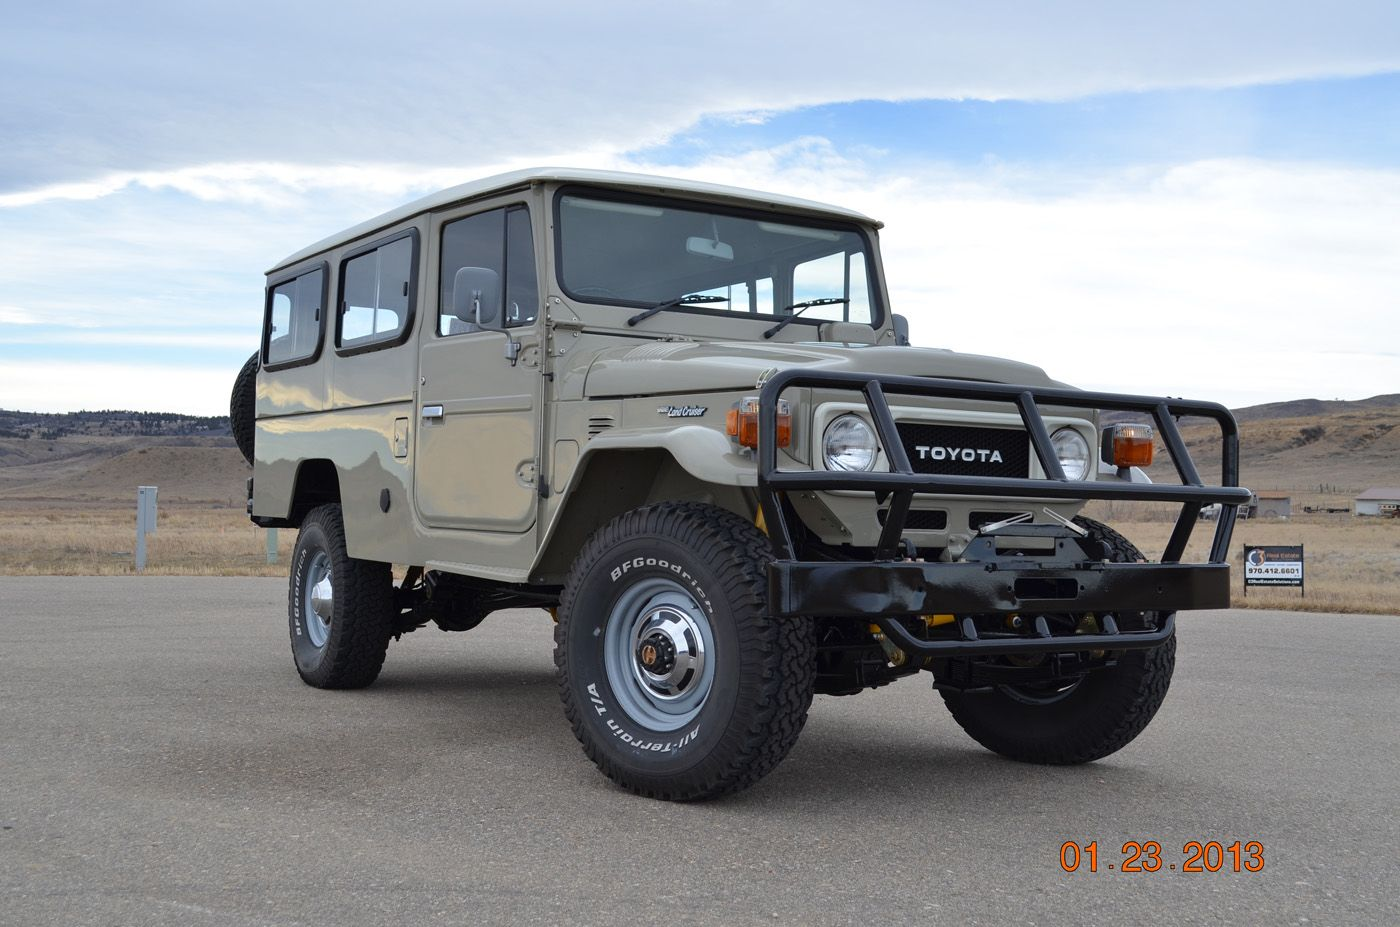 Land Cruiser Fj45 Troopy For Sale Land Cruiser Cruisers Overland Vehicles